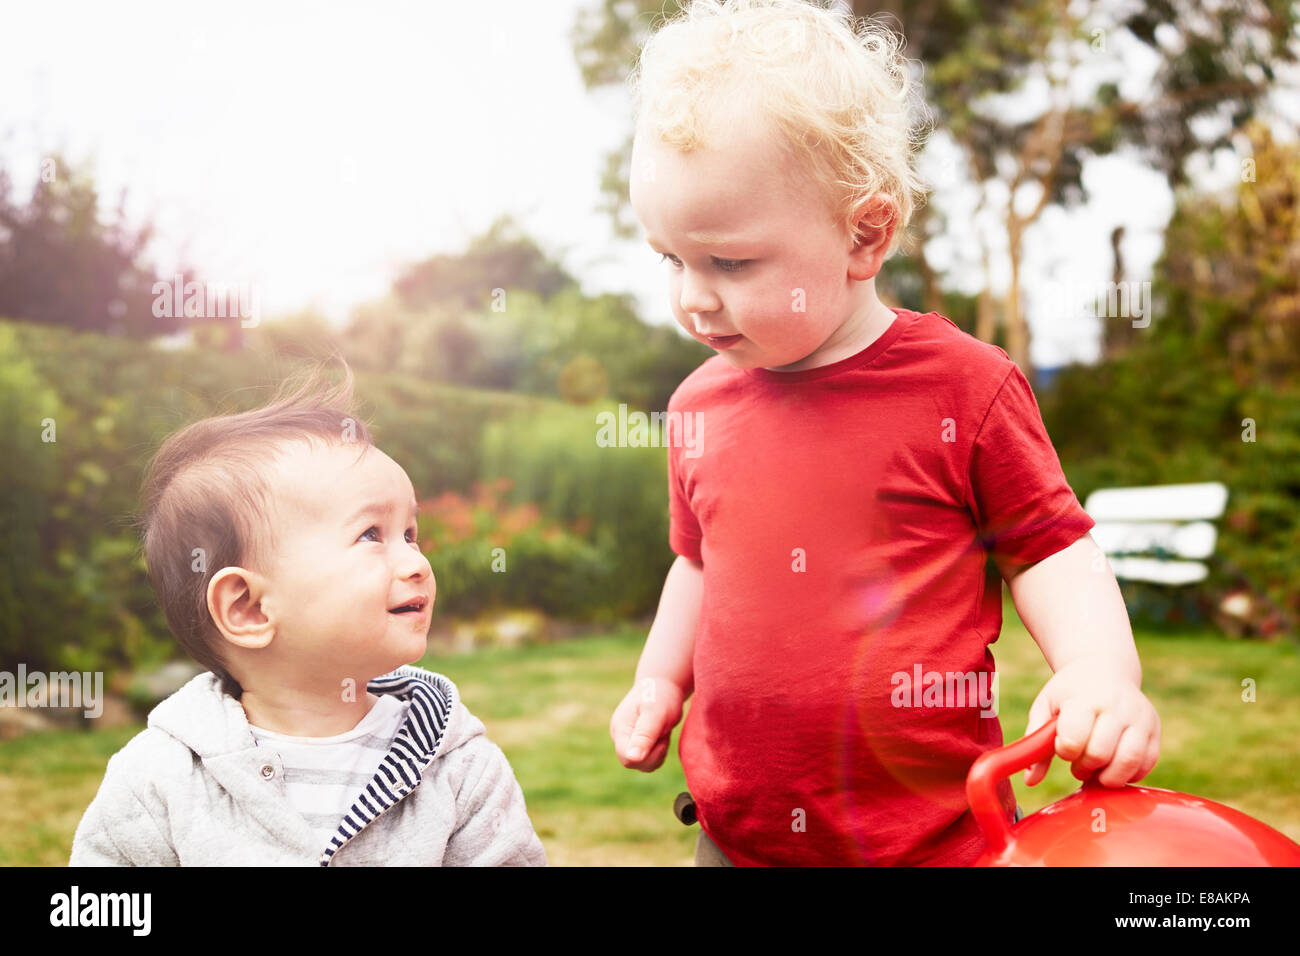 Two baby boys looking at each other - Stock Image